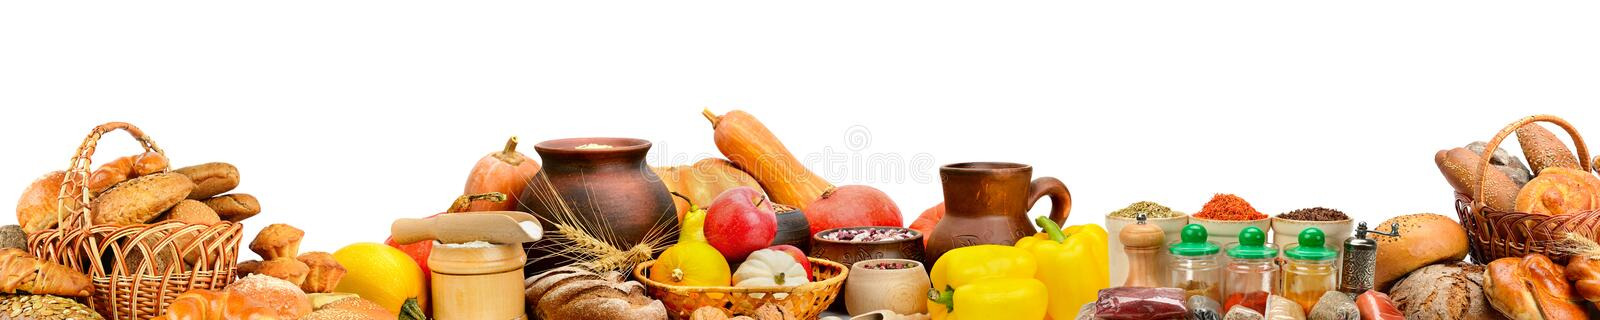 Wide photo with fresh fruits, vegetables, bread, dairy products, spices isolated on white background. royalty free stock images